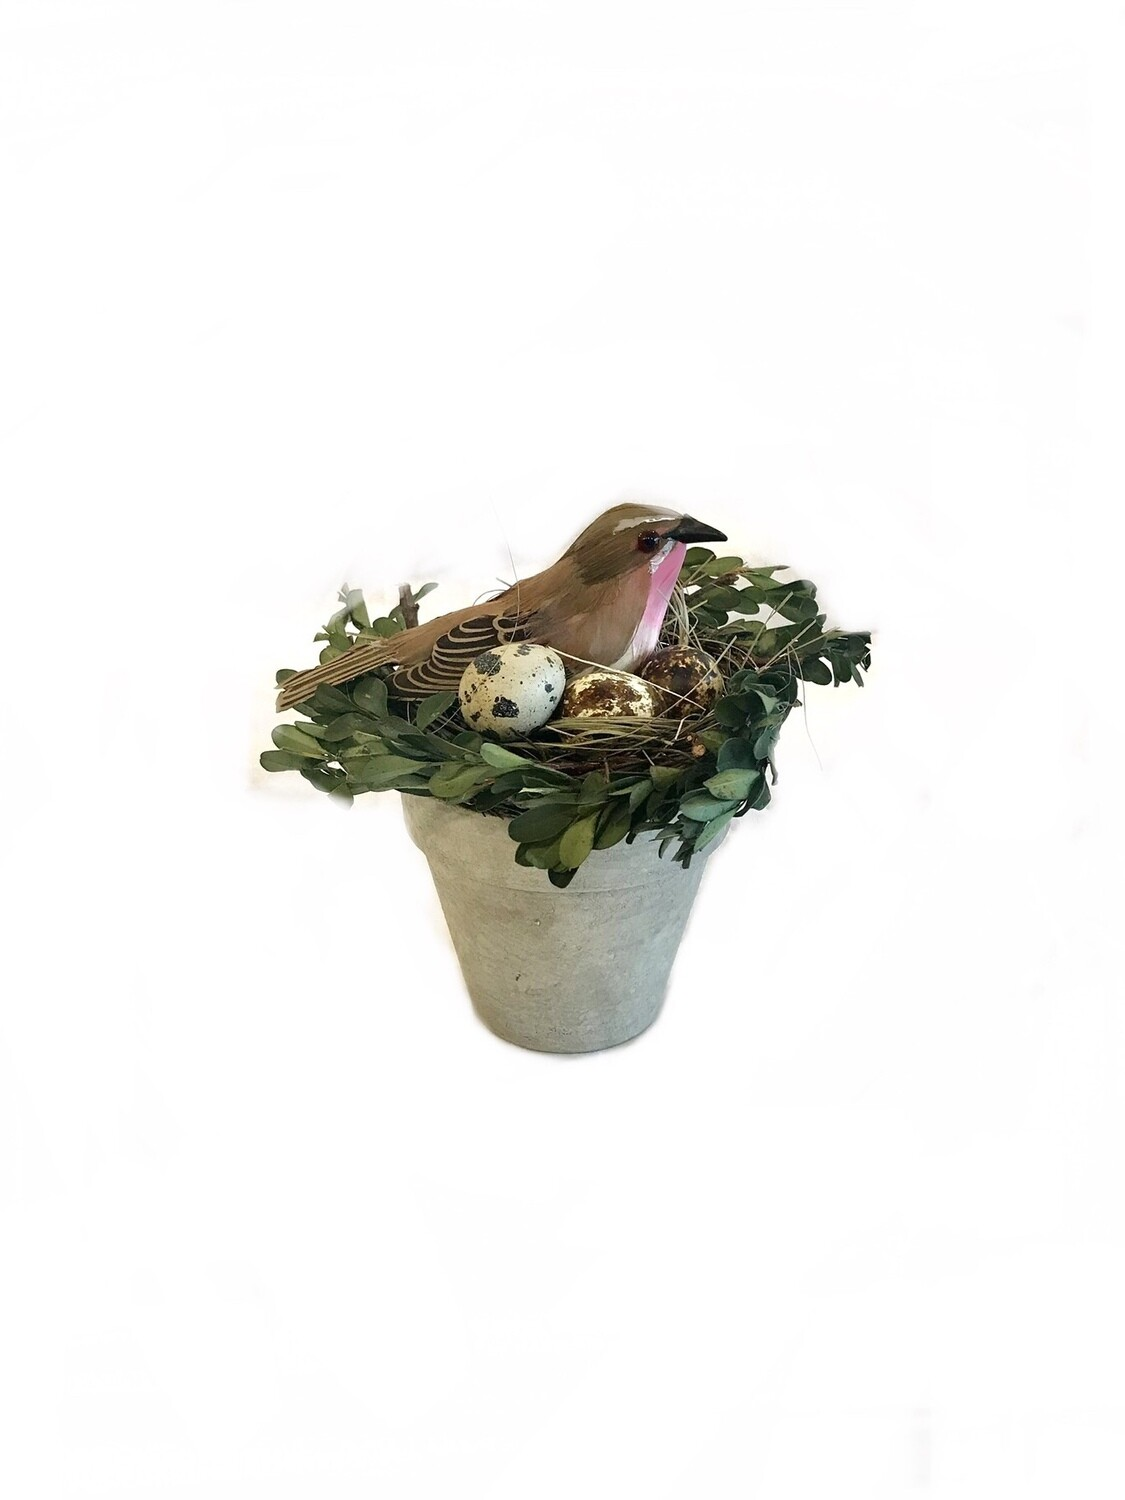 6 inch boxwood and grass nest in pot with bird